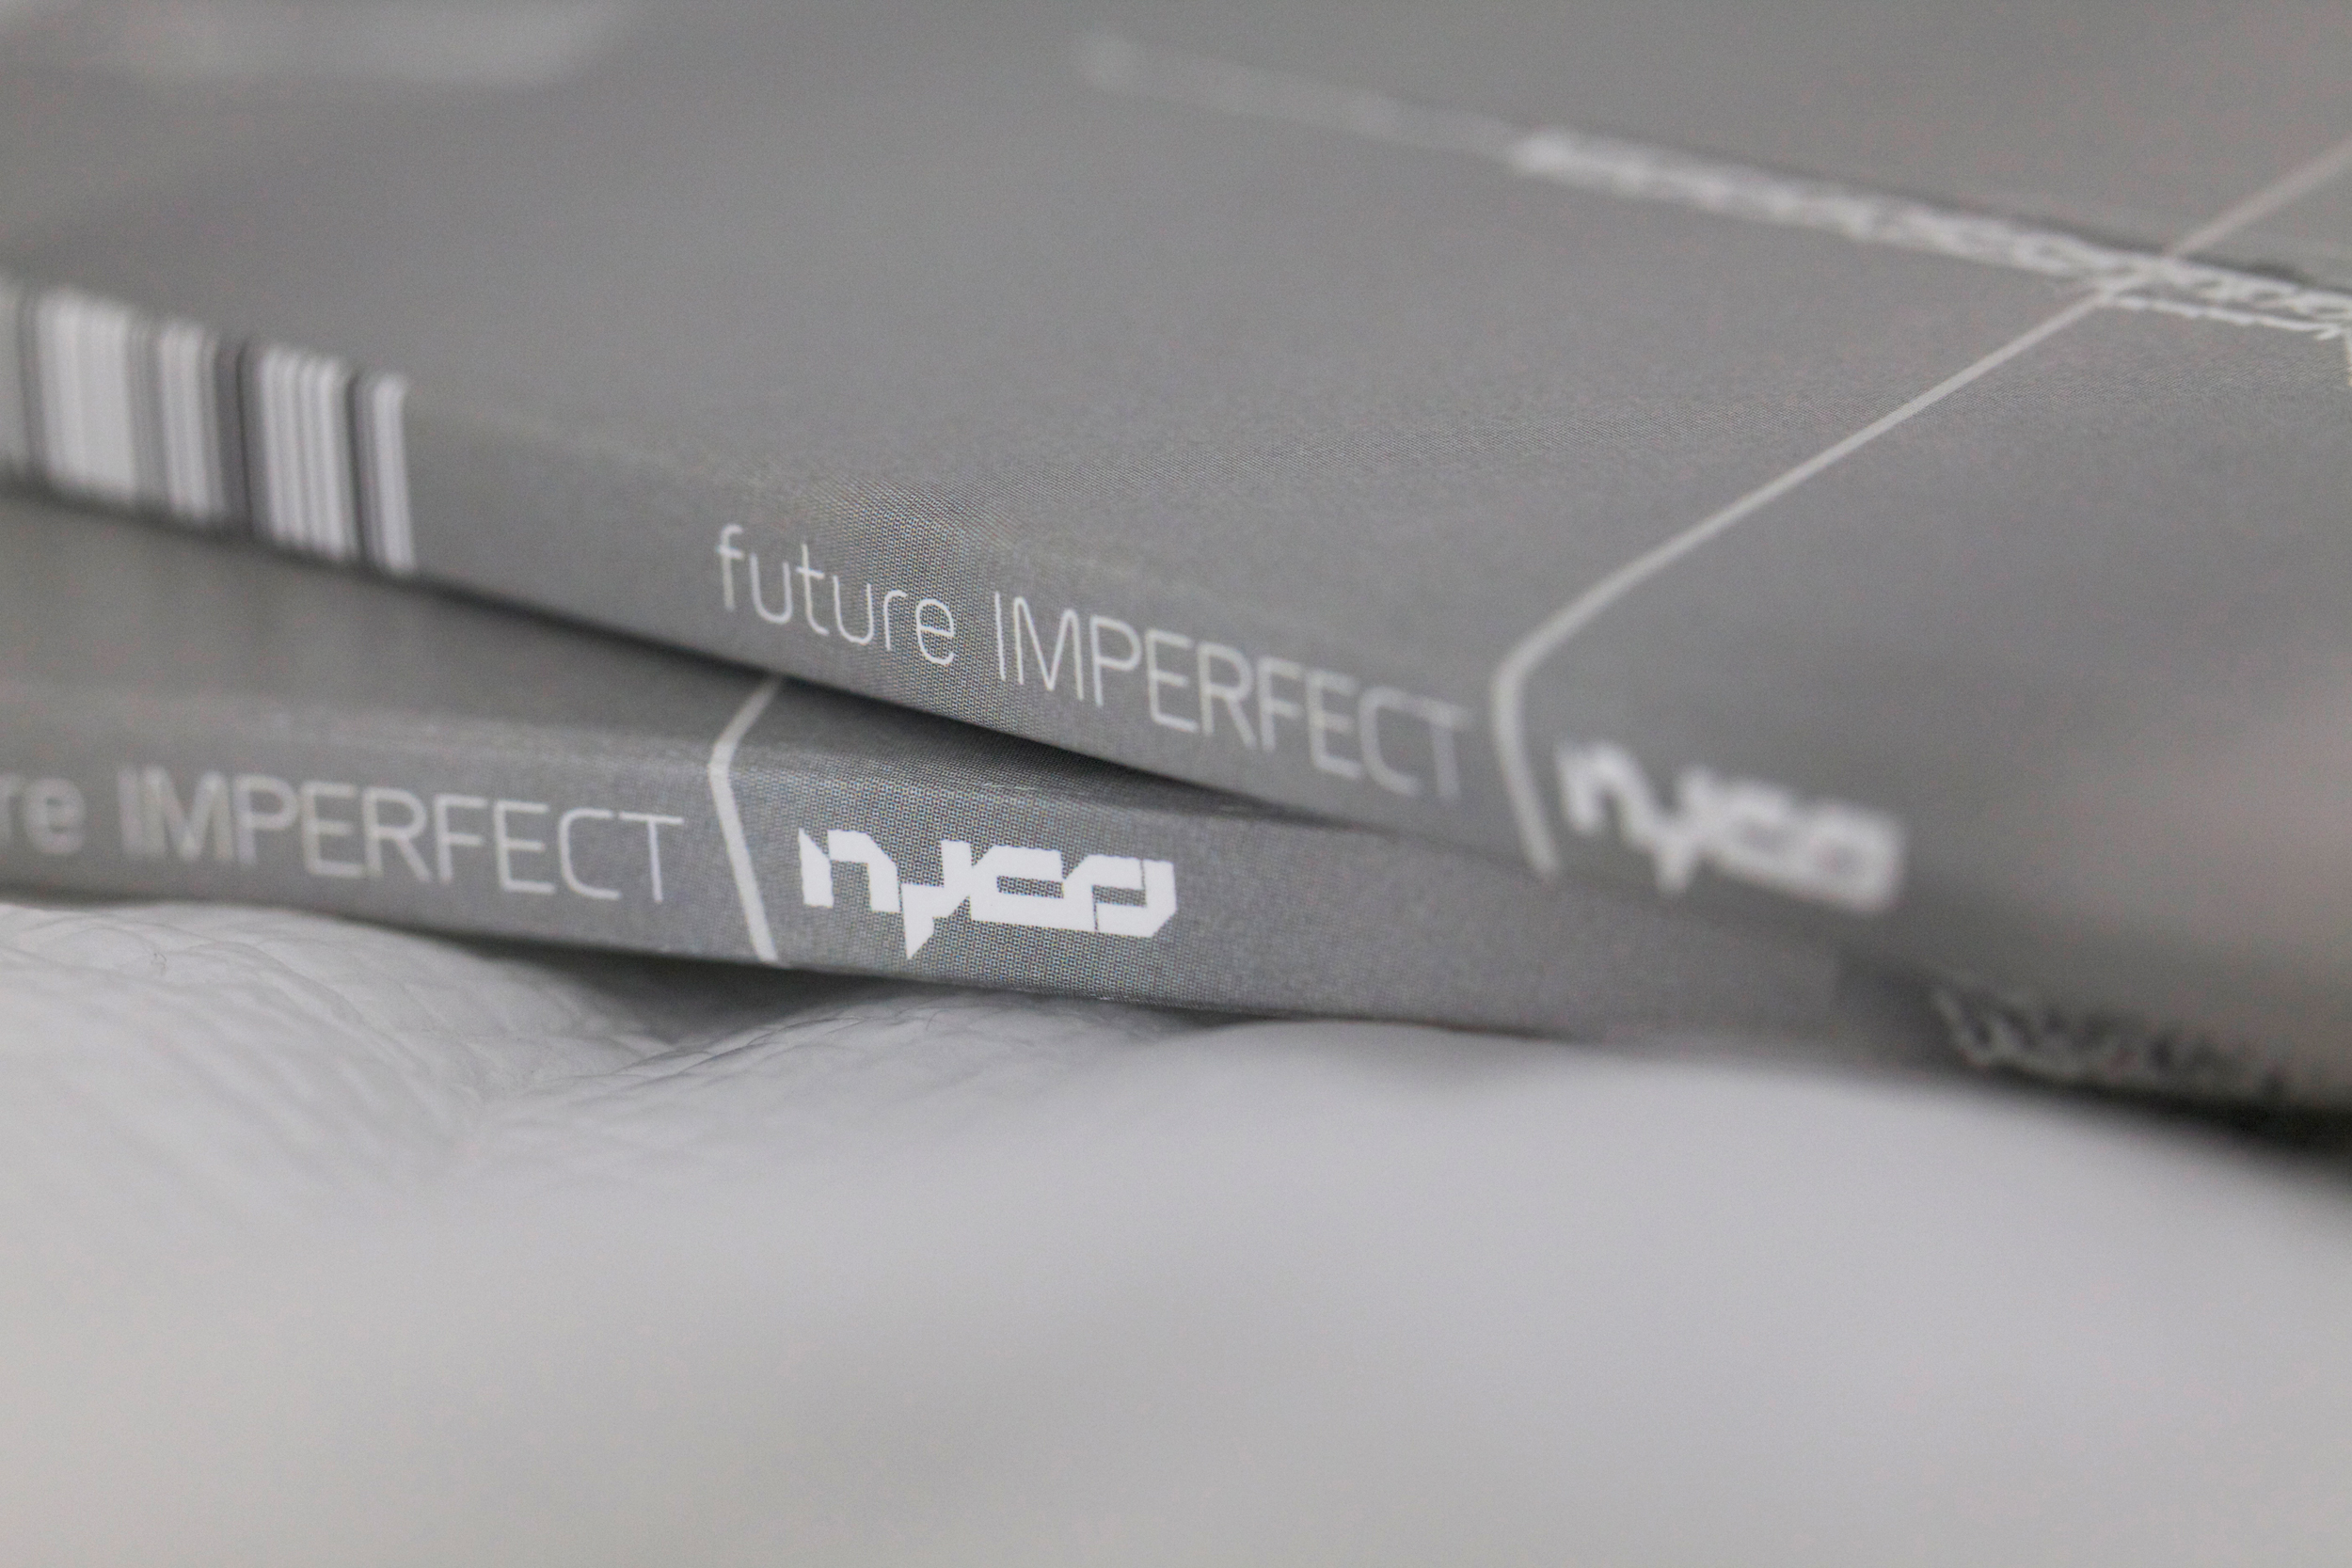 nyco_future-imperfect_02.jpg